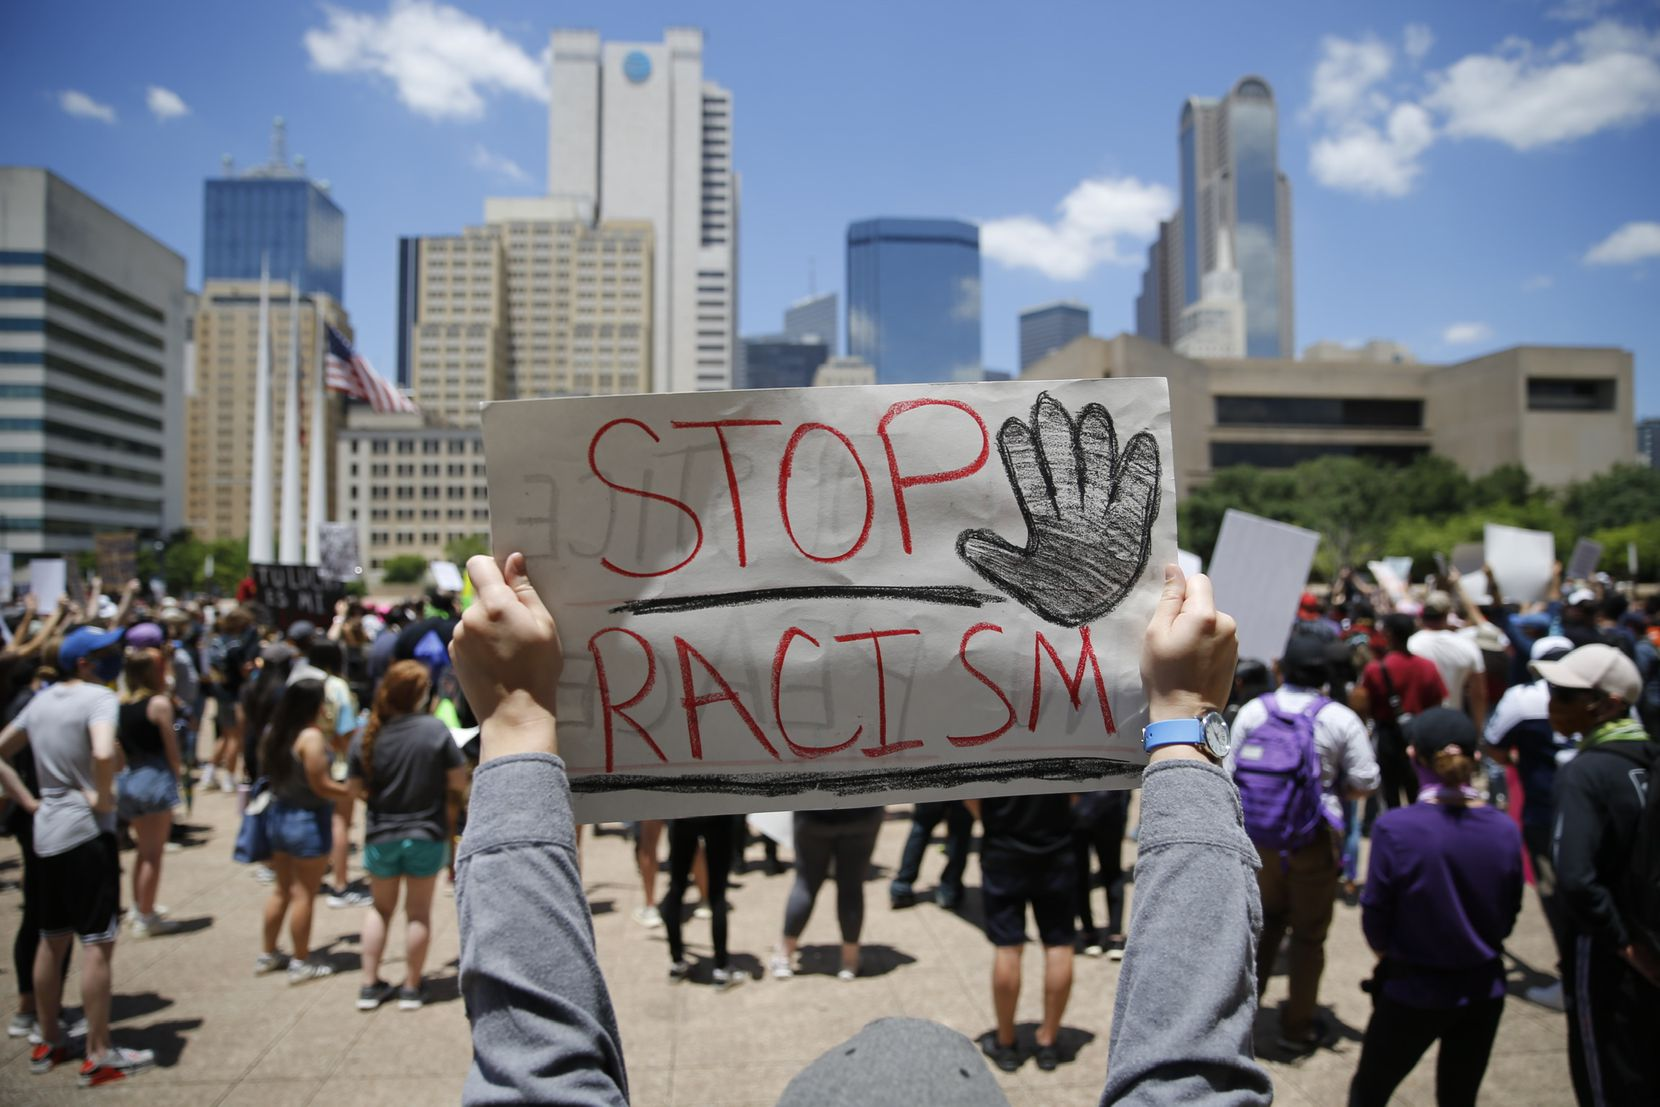 Protesters rally during a demonstration against police brutality in downtown Dallas, on Saturday. George Floyd died while in police custody in Minneapolis on Monday. Police Officer Derek Chauvin, who video showed holding his knee on the Floyd's neck for at least five minutes, has been charged with murder and manslaughter in the death.